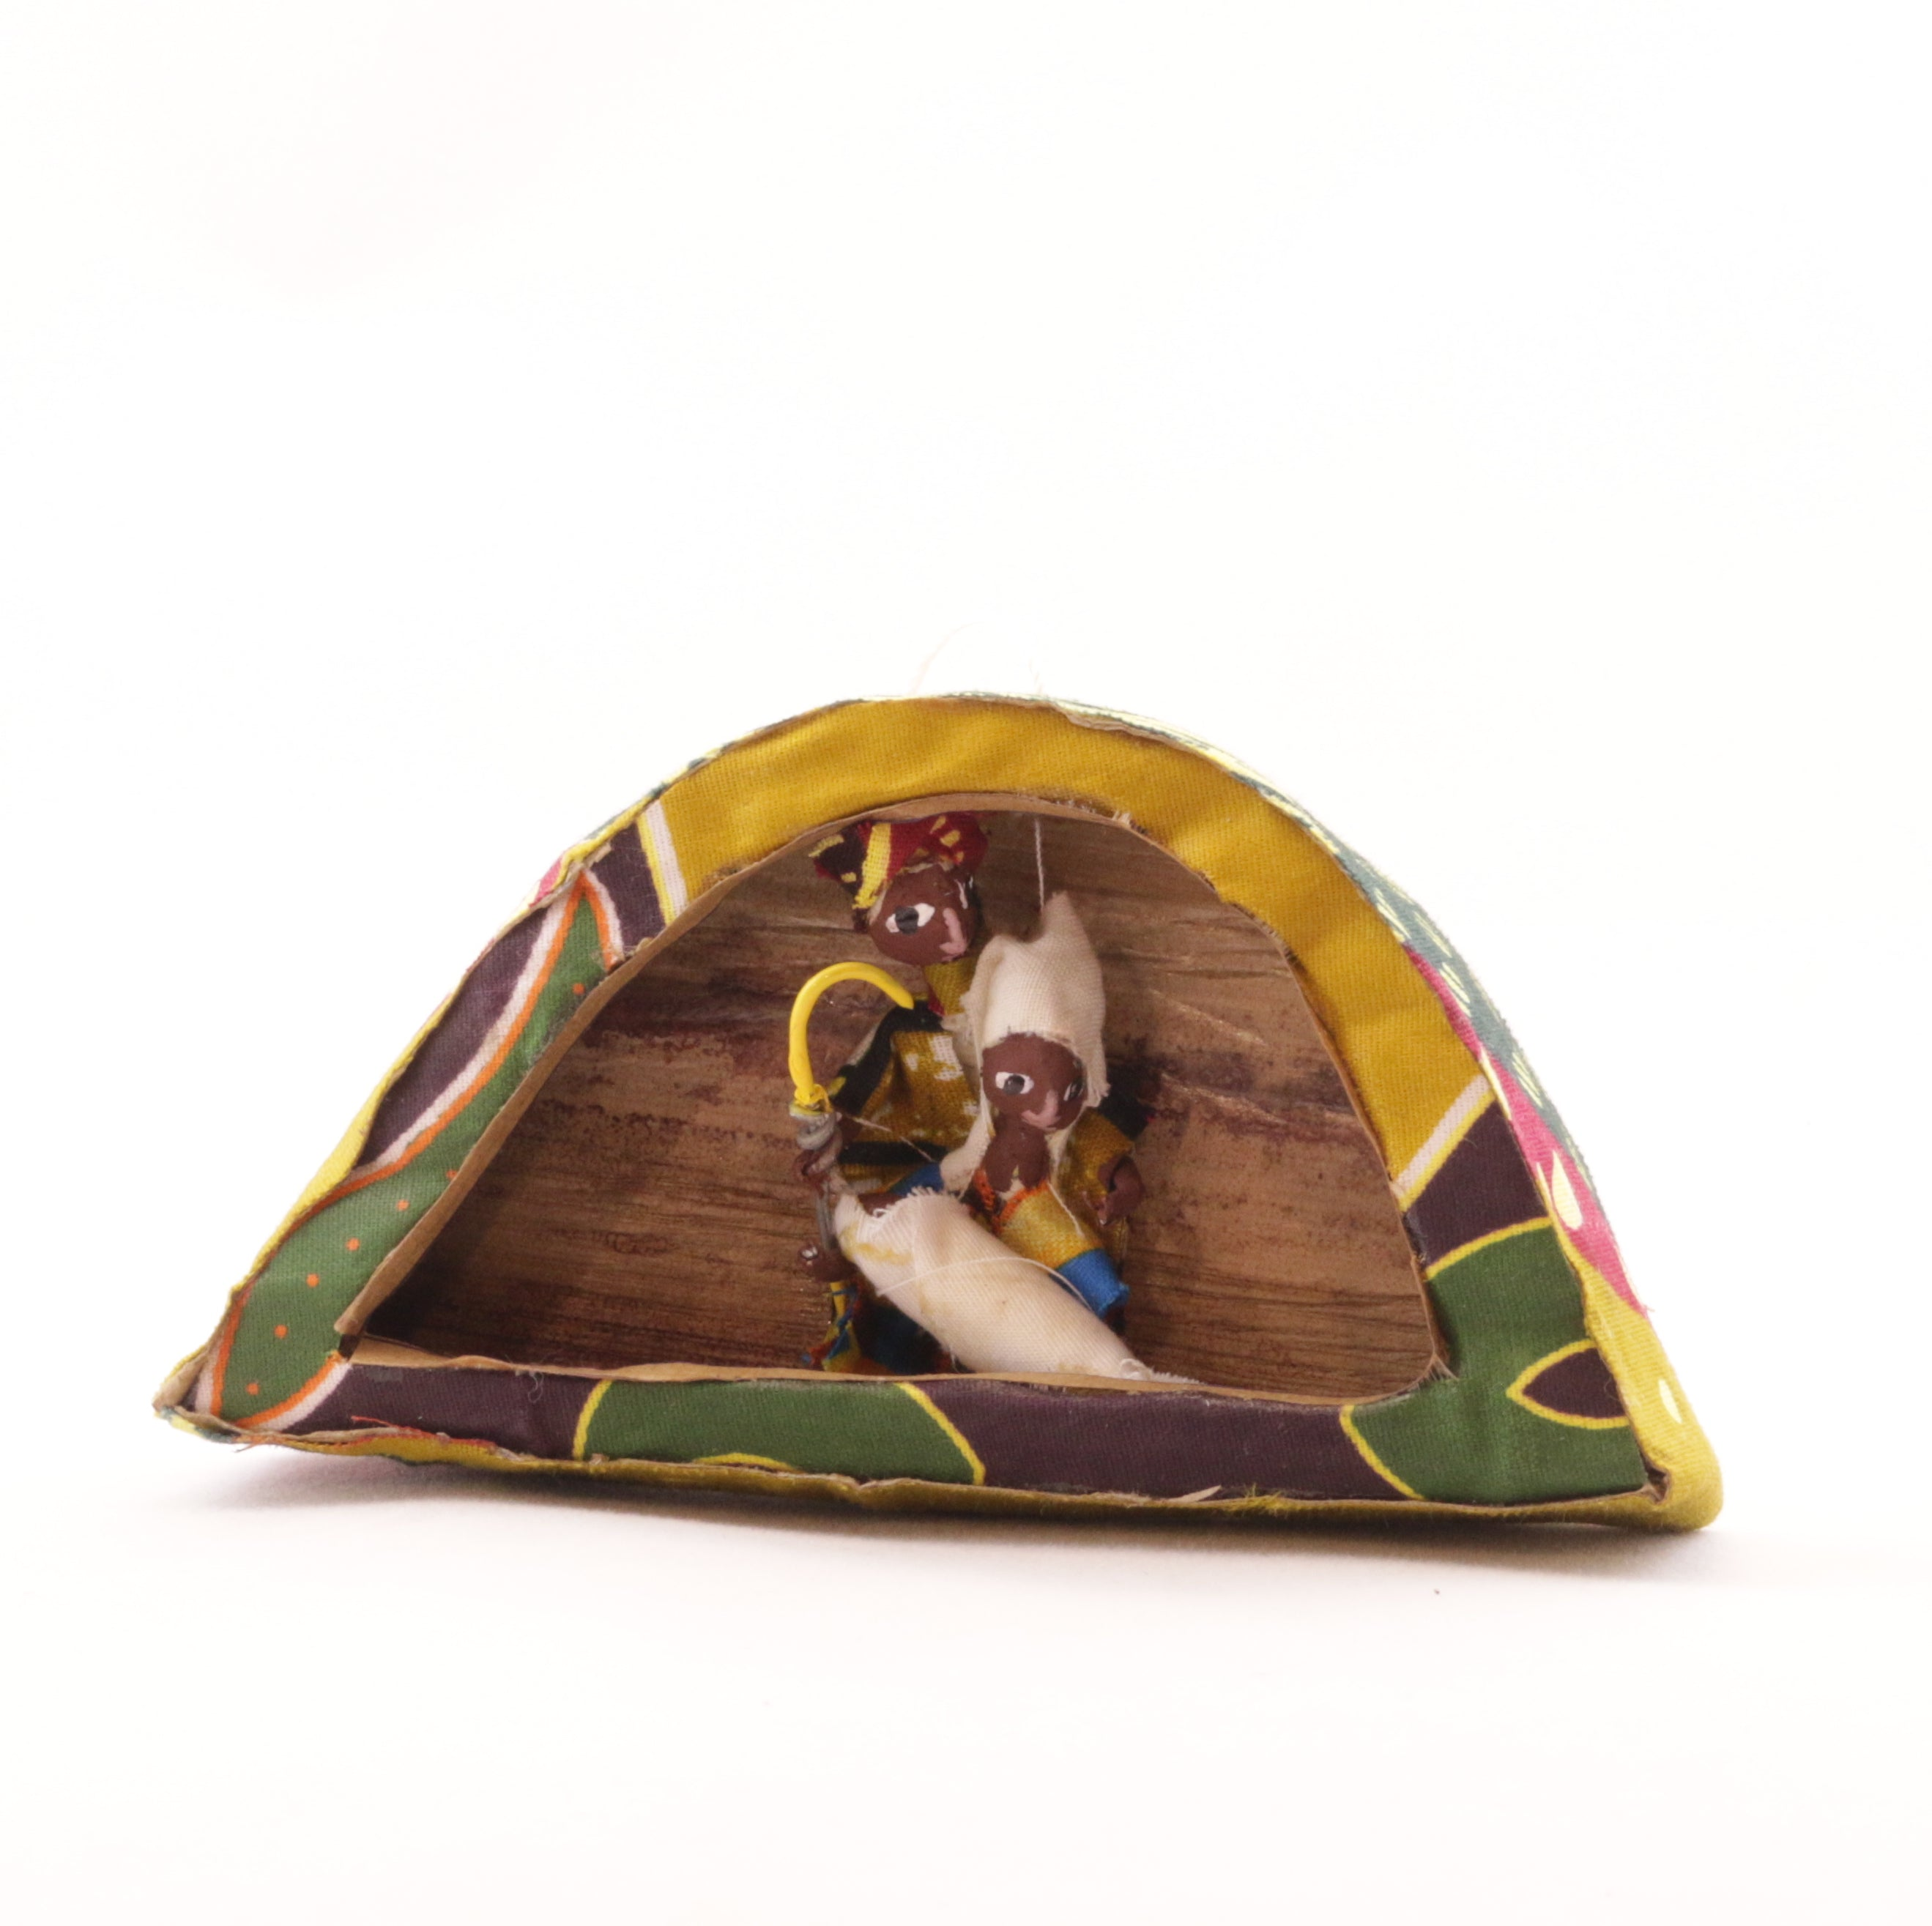 African Figurine Ornament - Holy Family in Arch